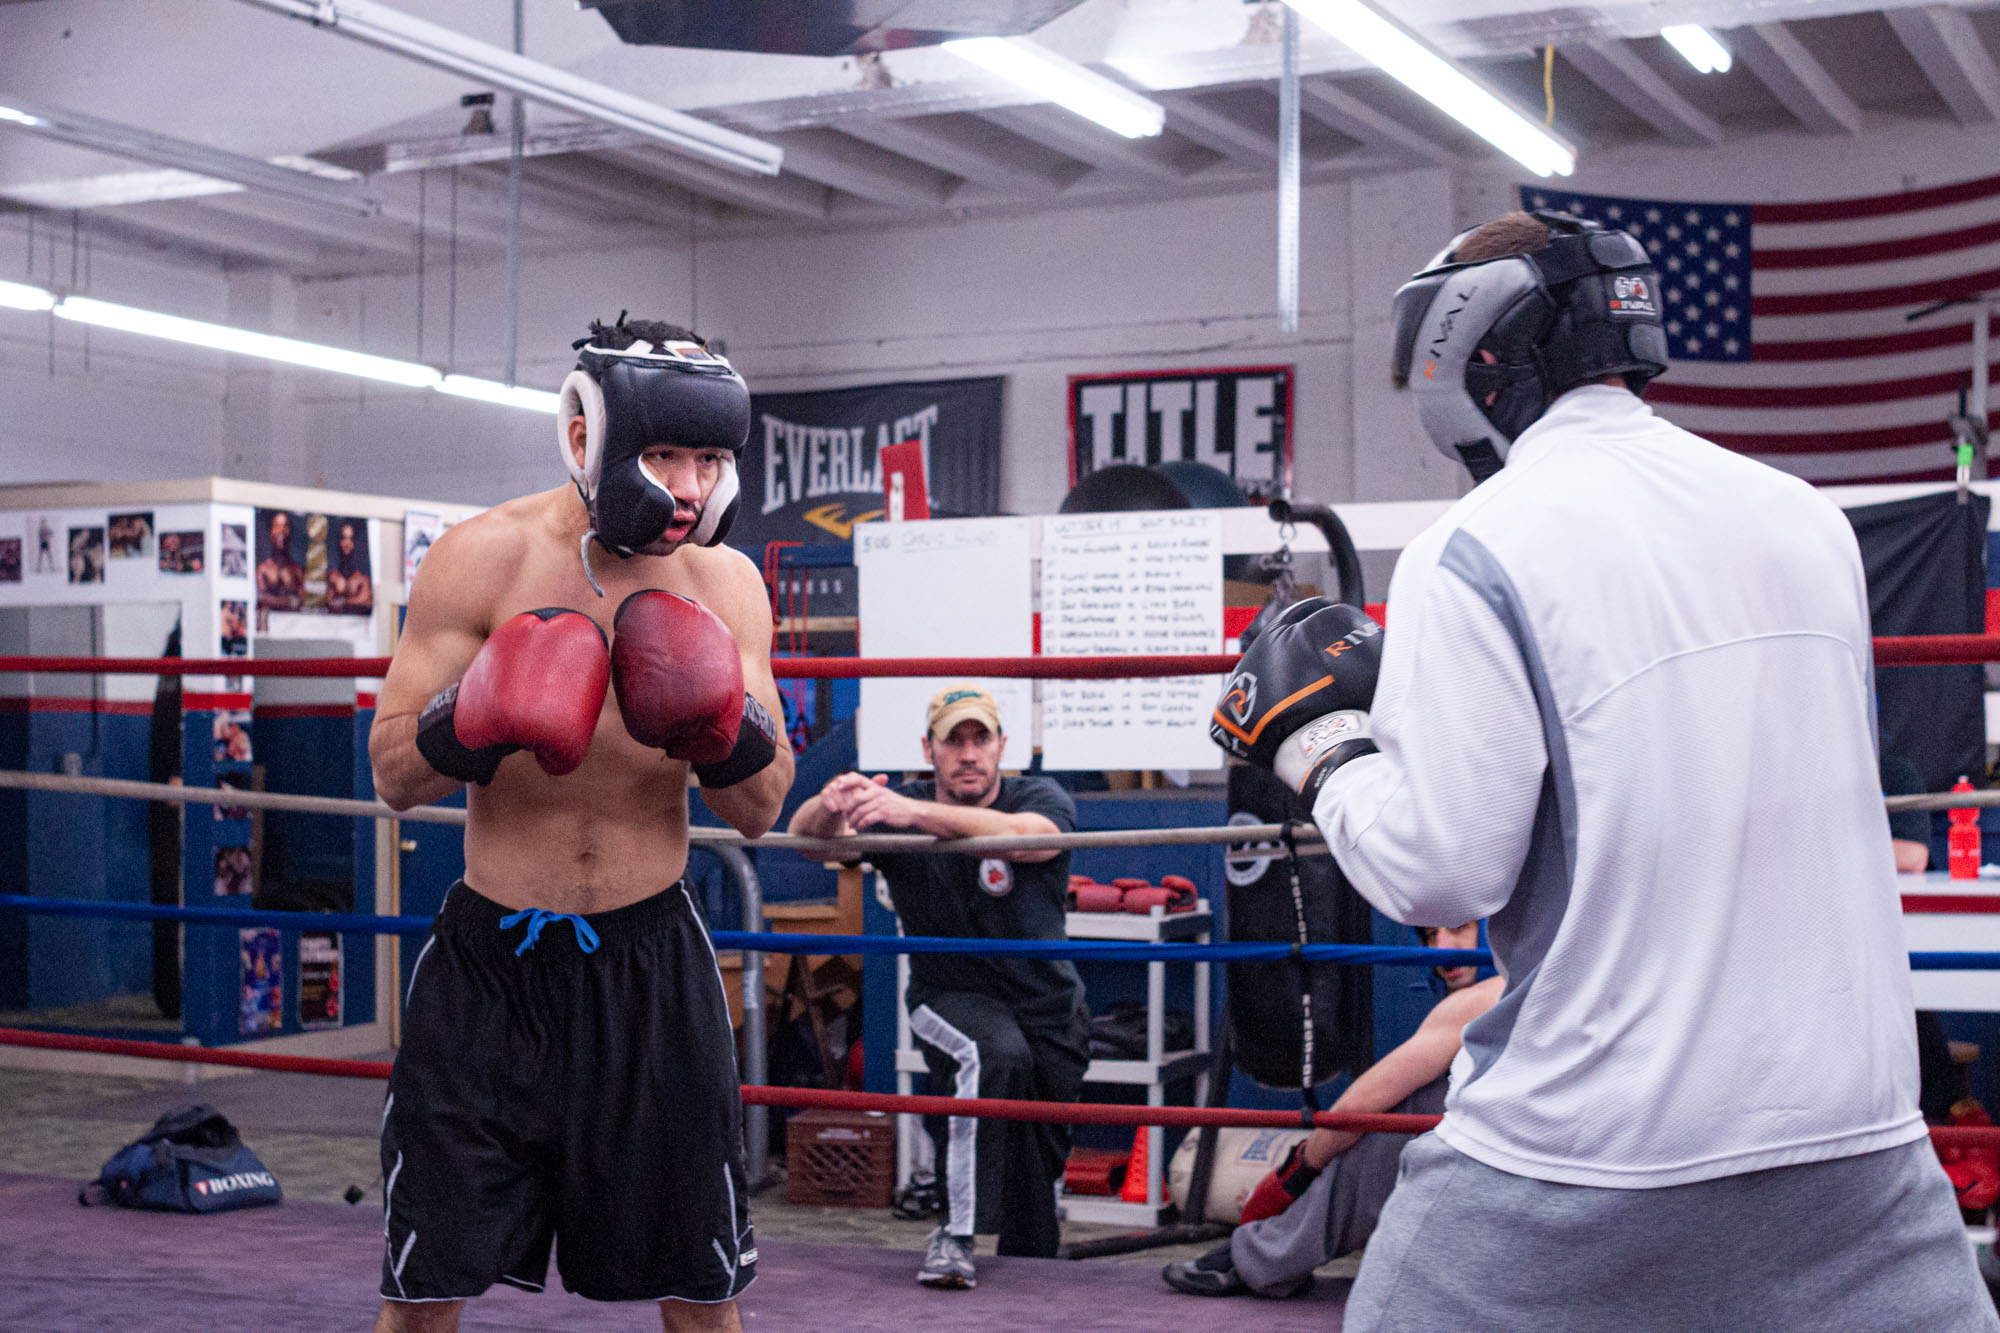 two boxers begin to spar as their coach watches between the ropes